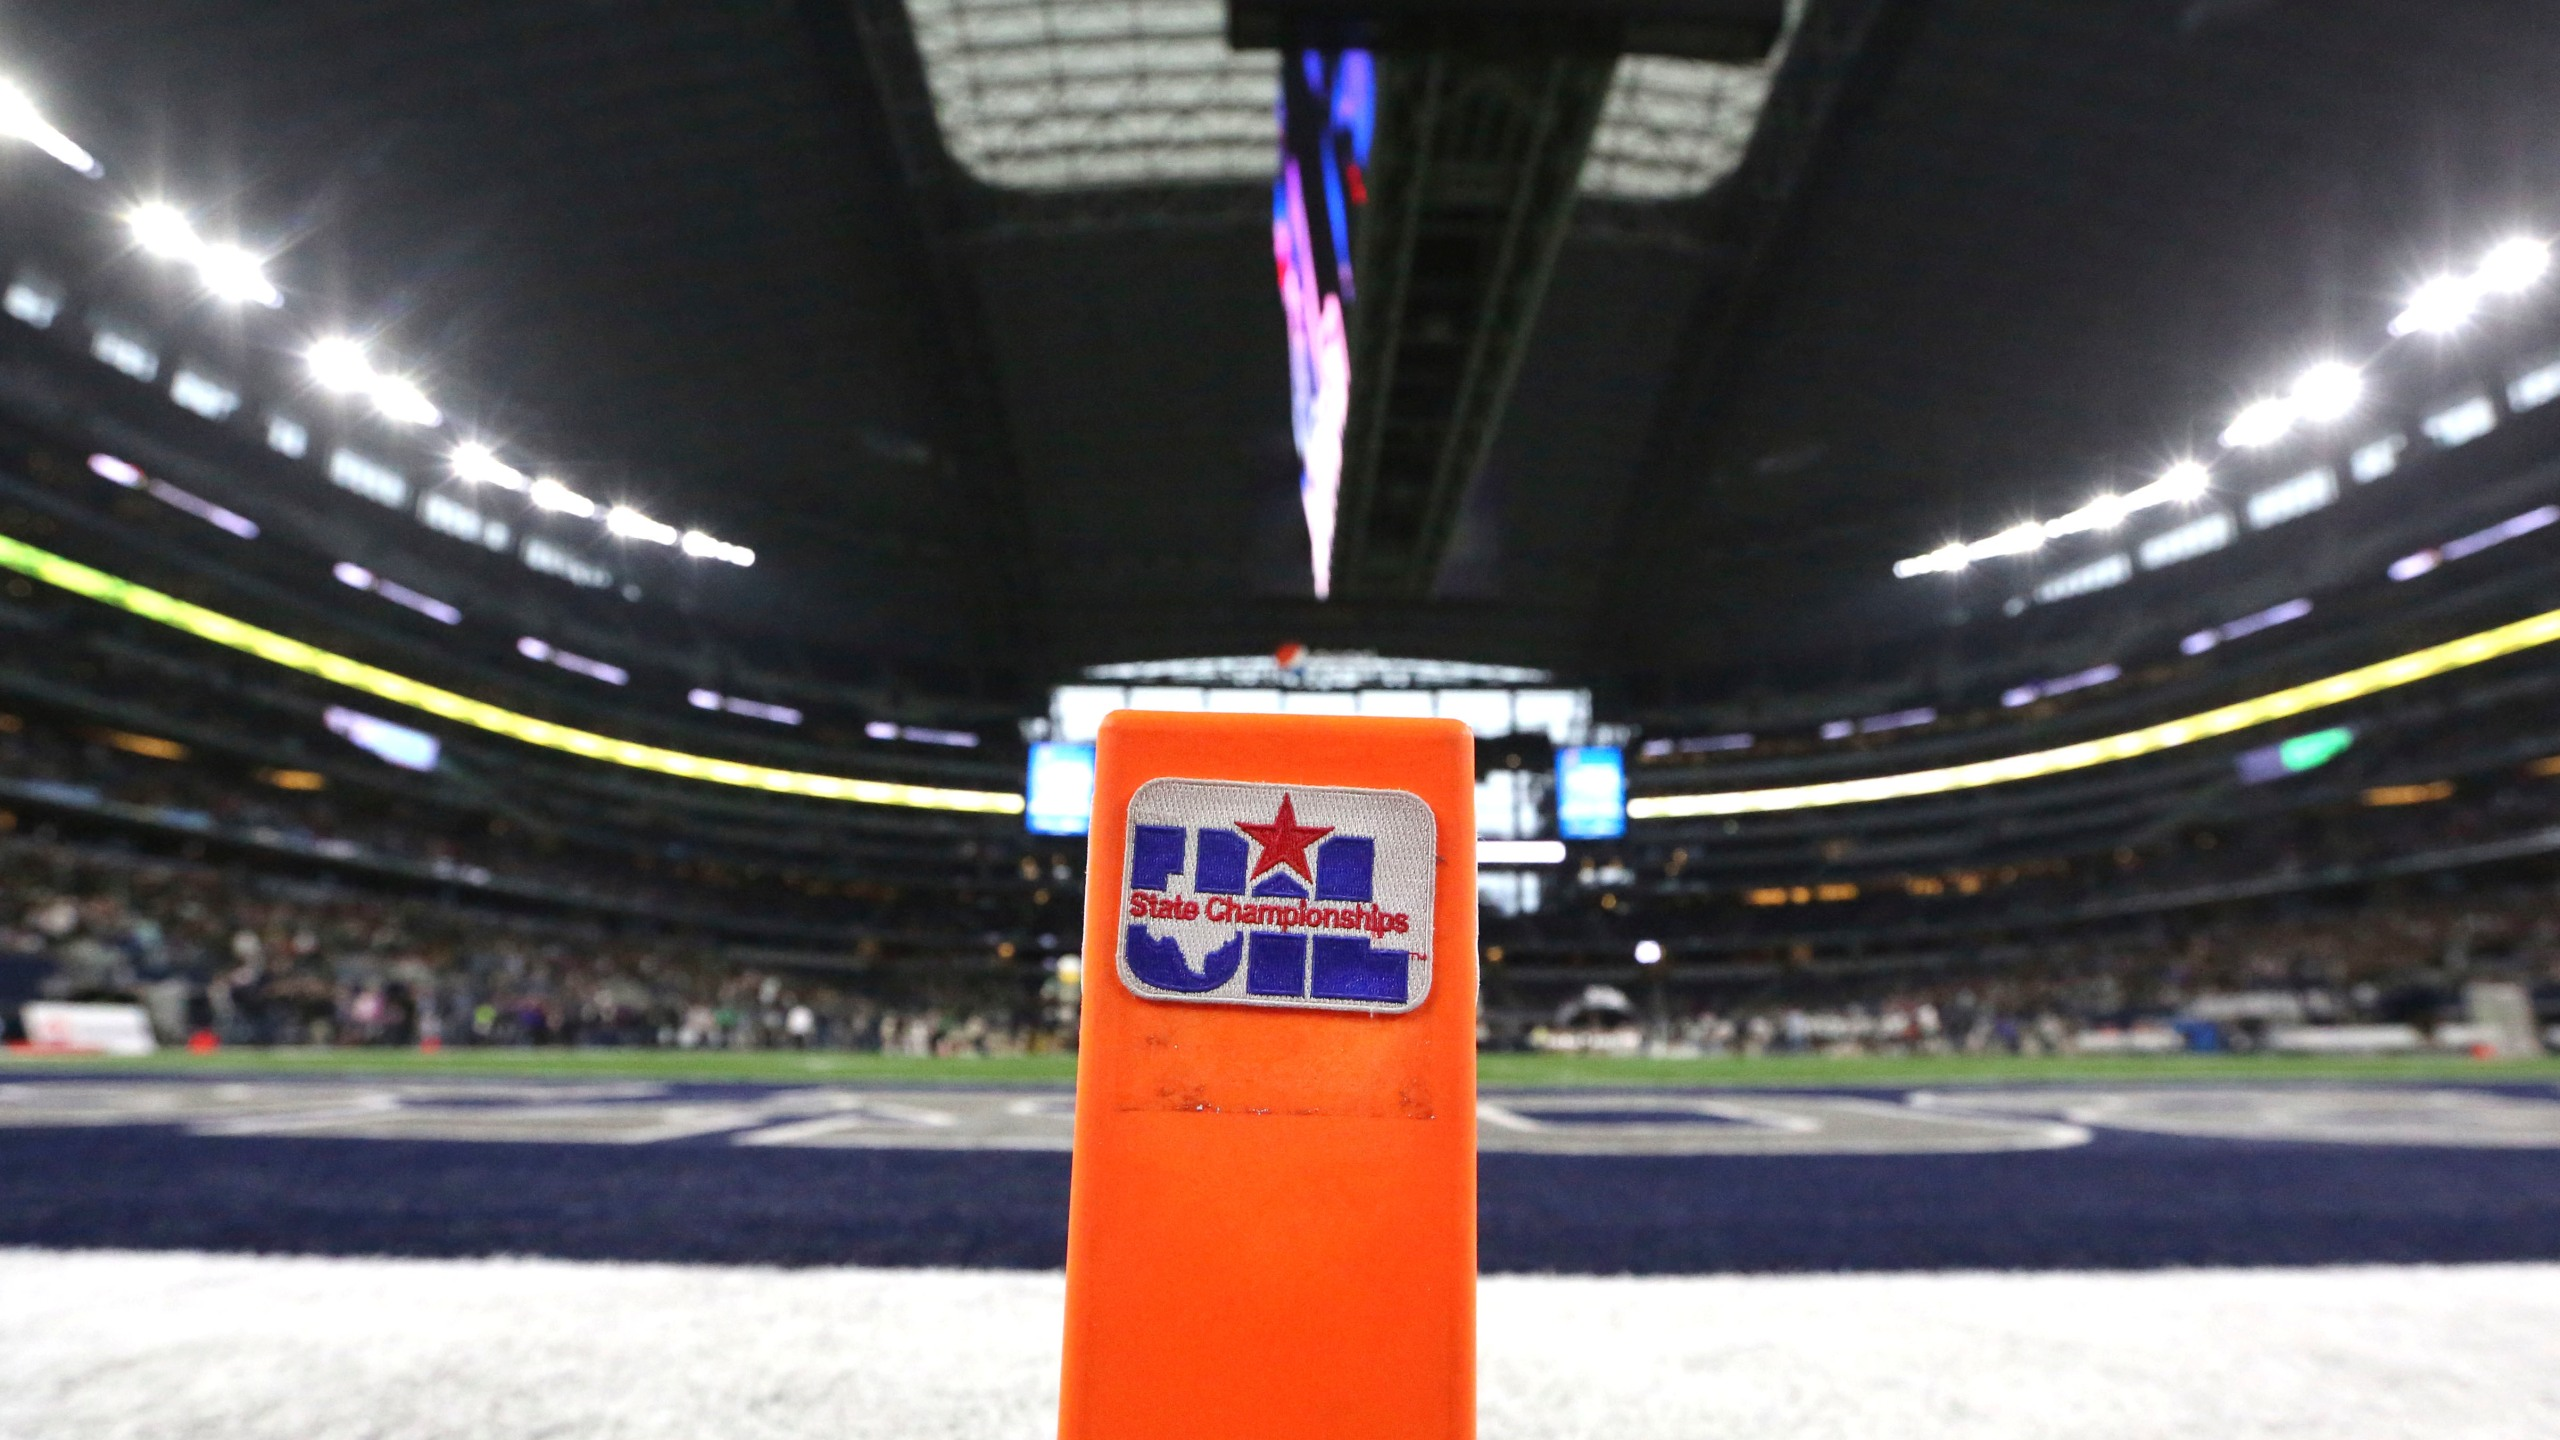 UIL Class 6A Division II Championship Football